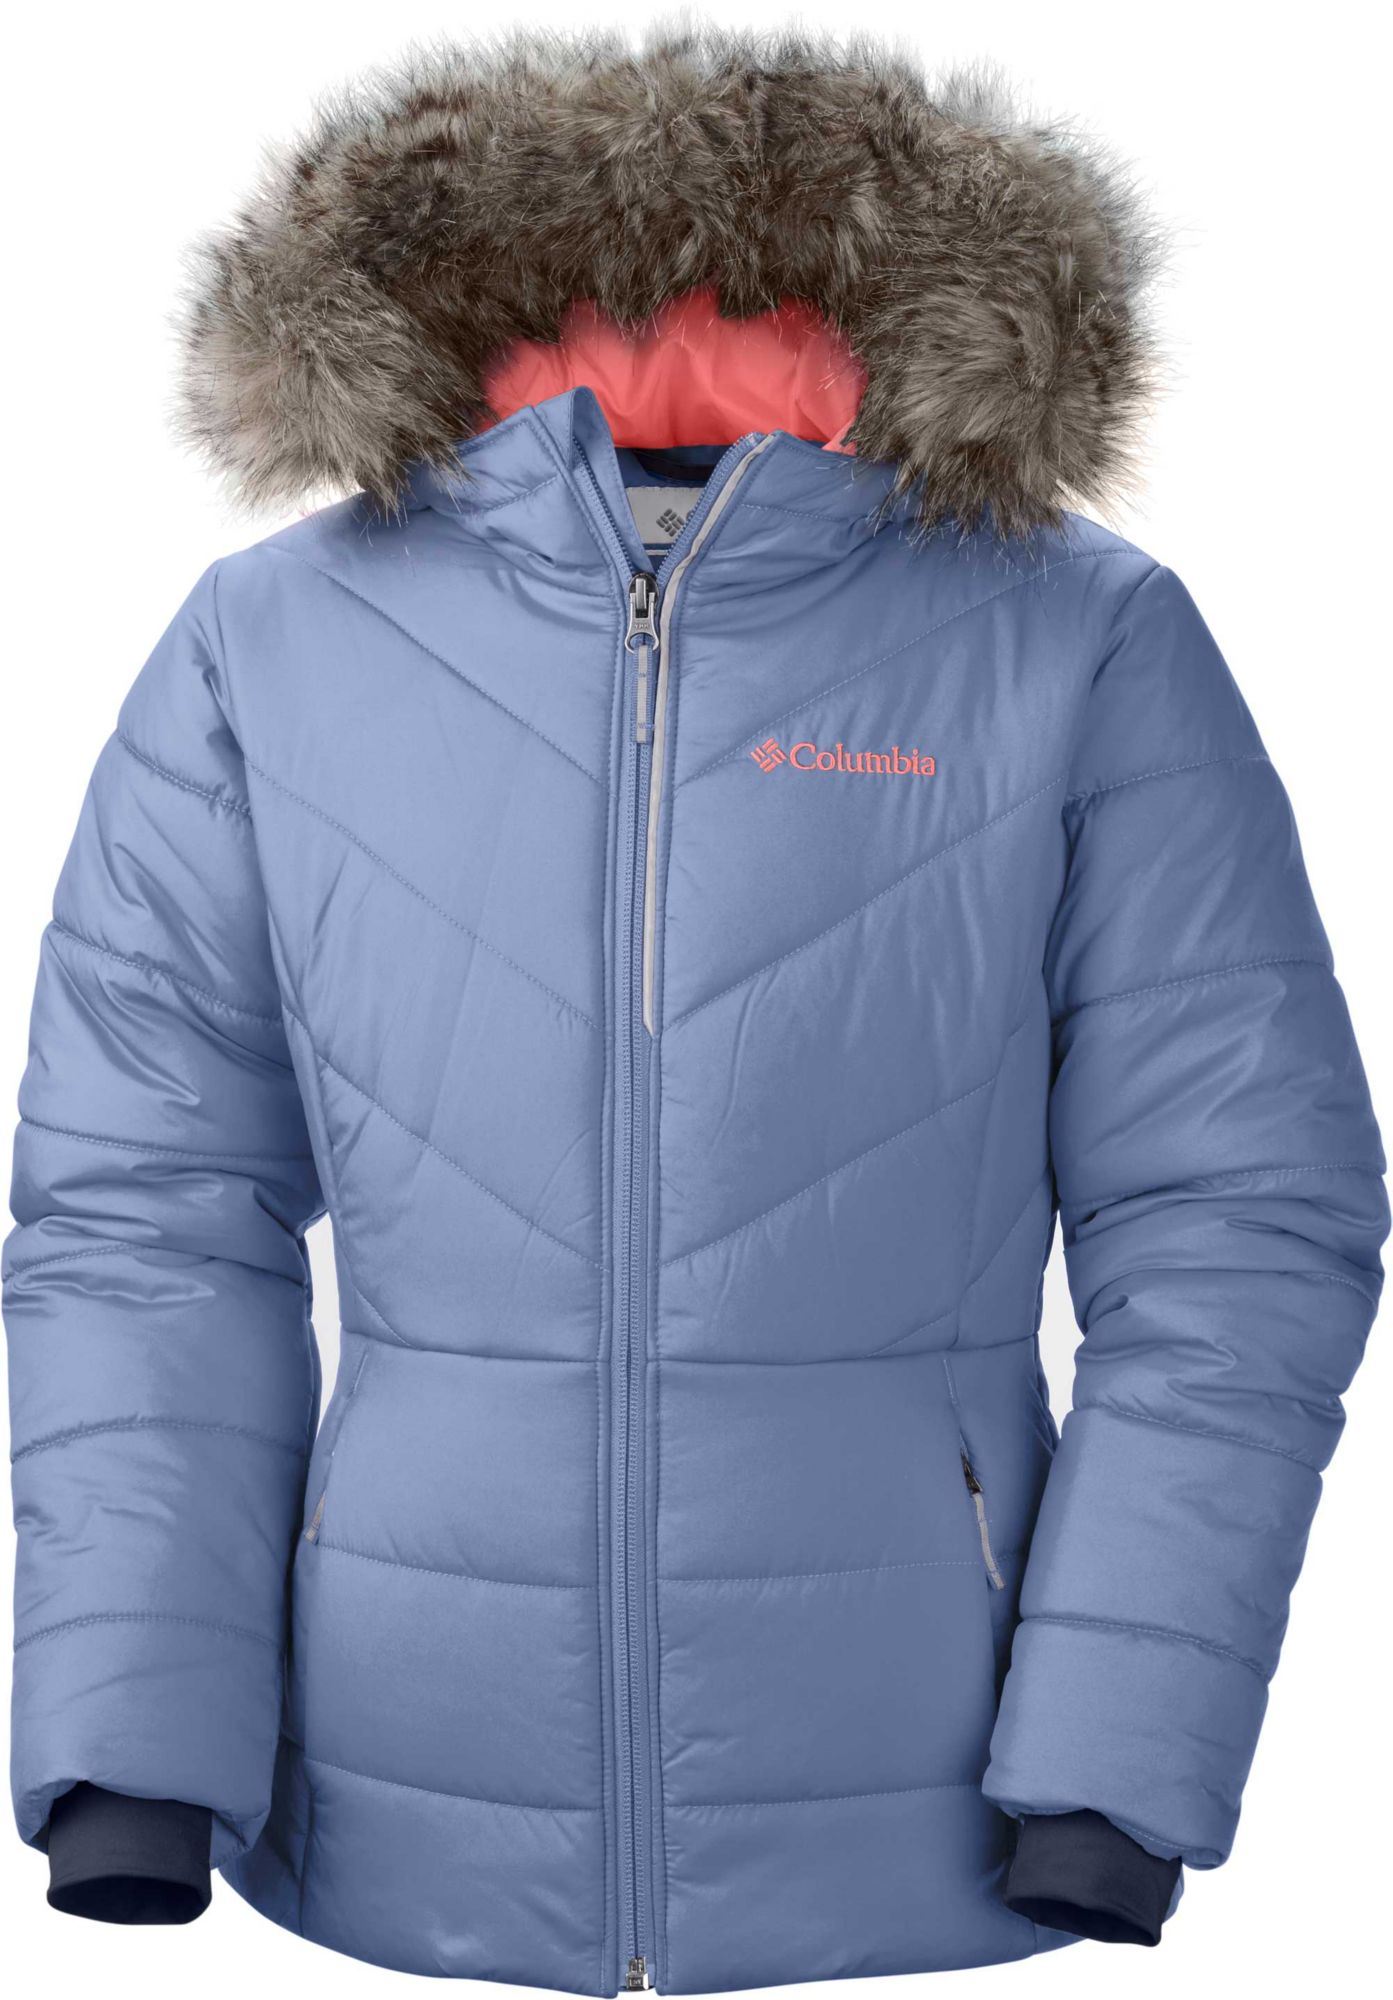 Girls' Winter Coats & Jackets | Kids | DICK's Sporting Goods